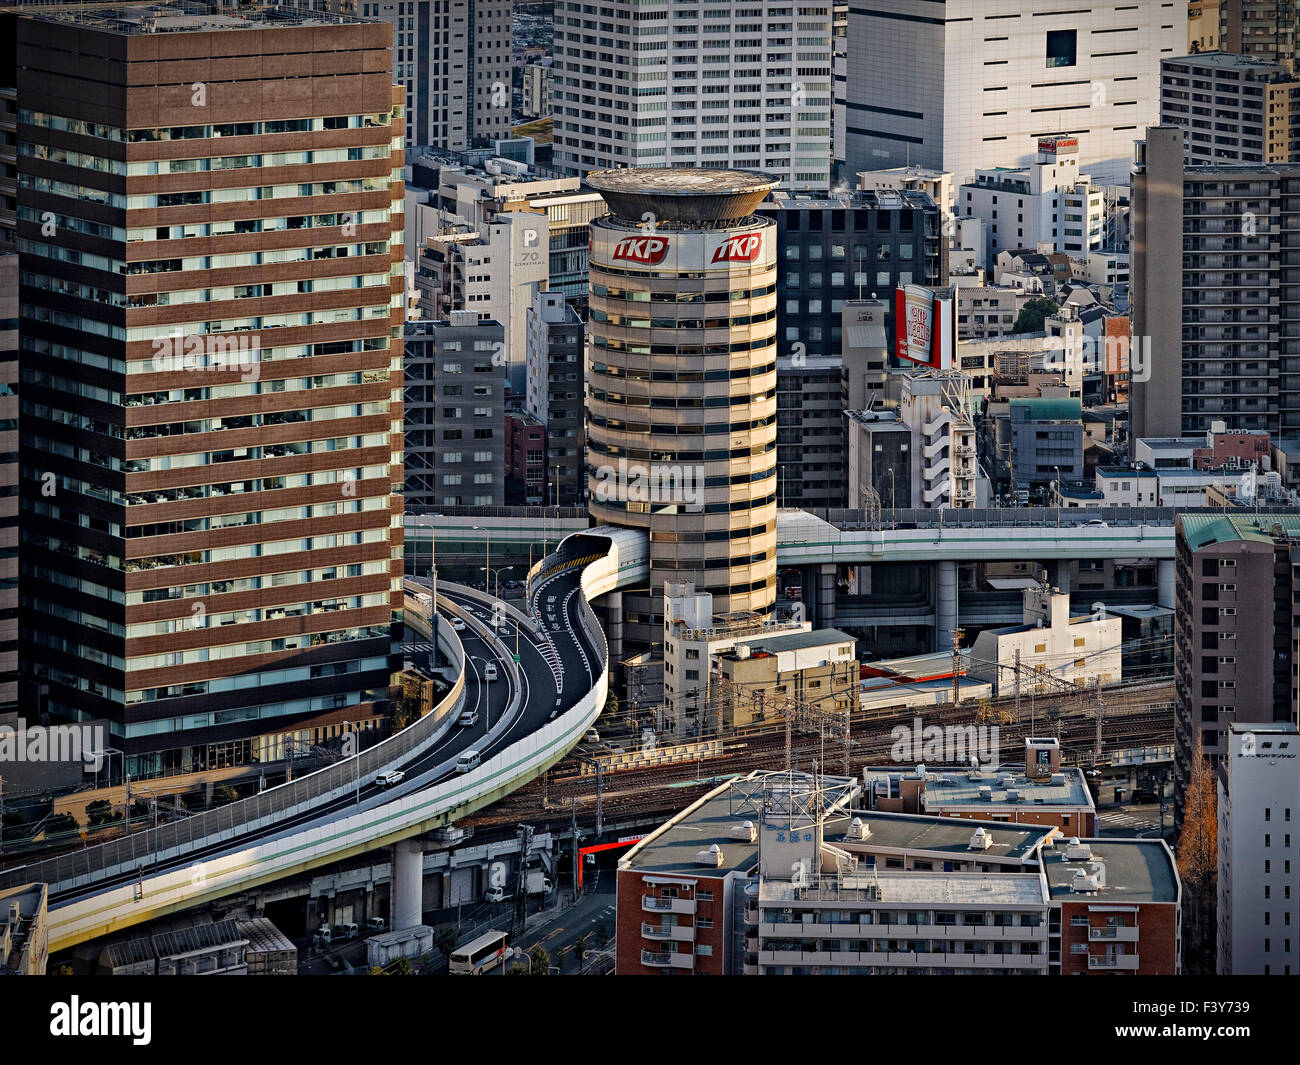 Japan, Honshu island, Kansai, Osaka, roads and buildings downtown. - Stock Image